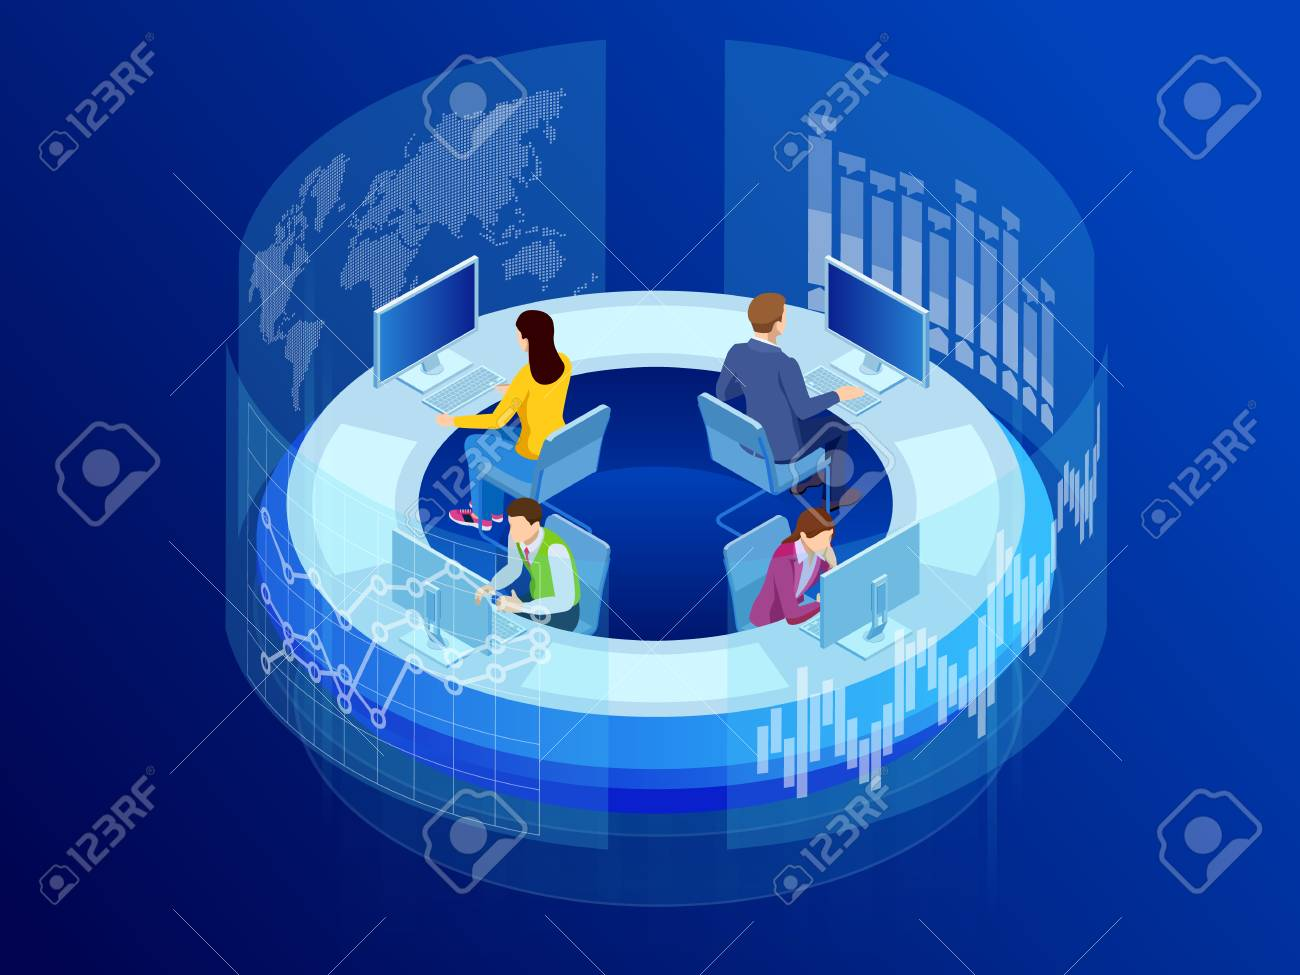 Isometric Business data analytics process management or intelligence dashboard on virtual screen showing sales and operations data statistics charts and key performance indicators concept - 107794509